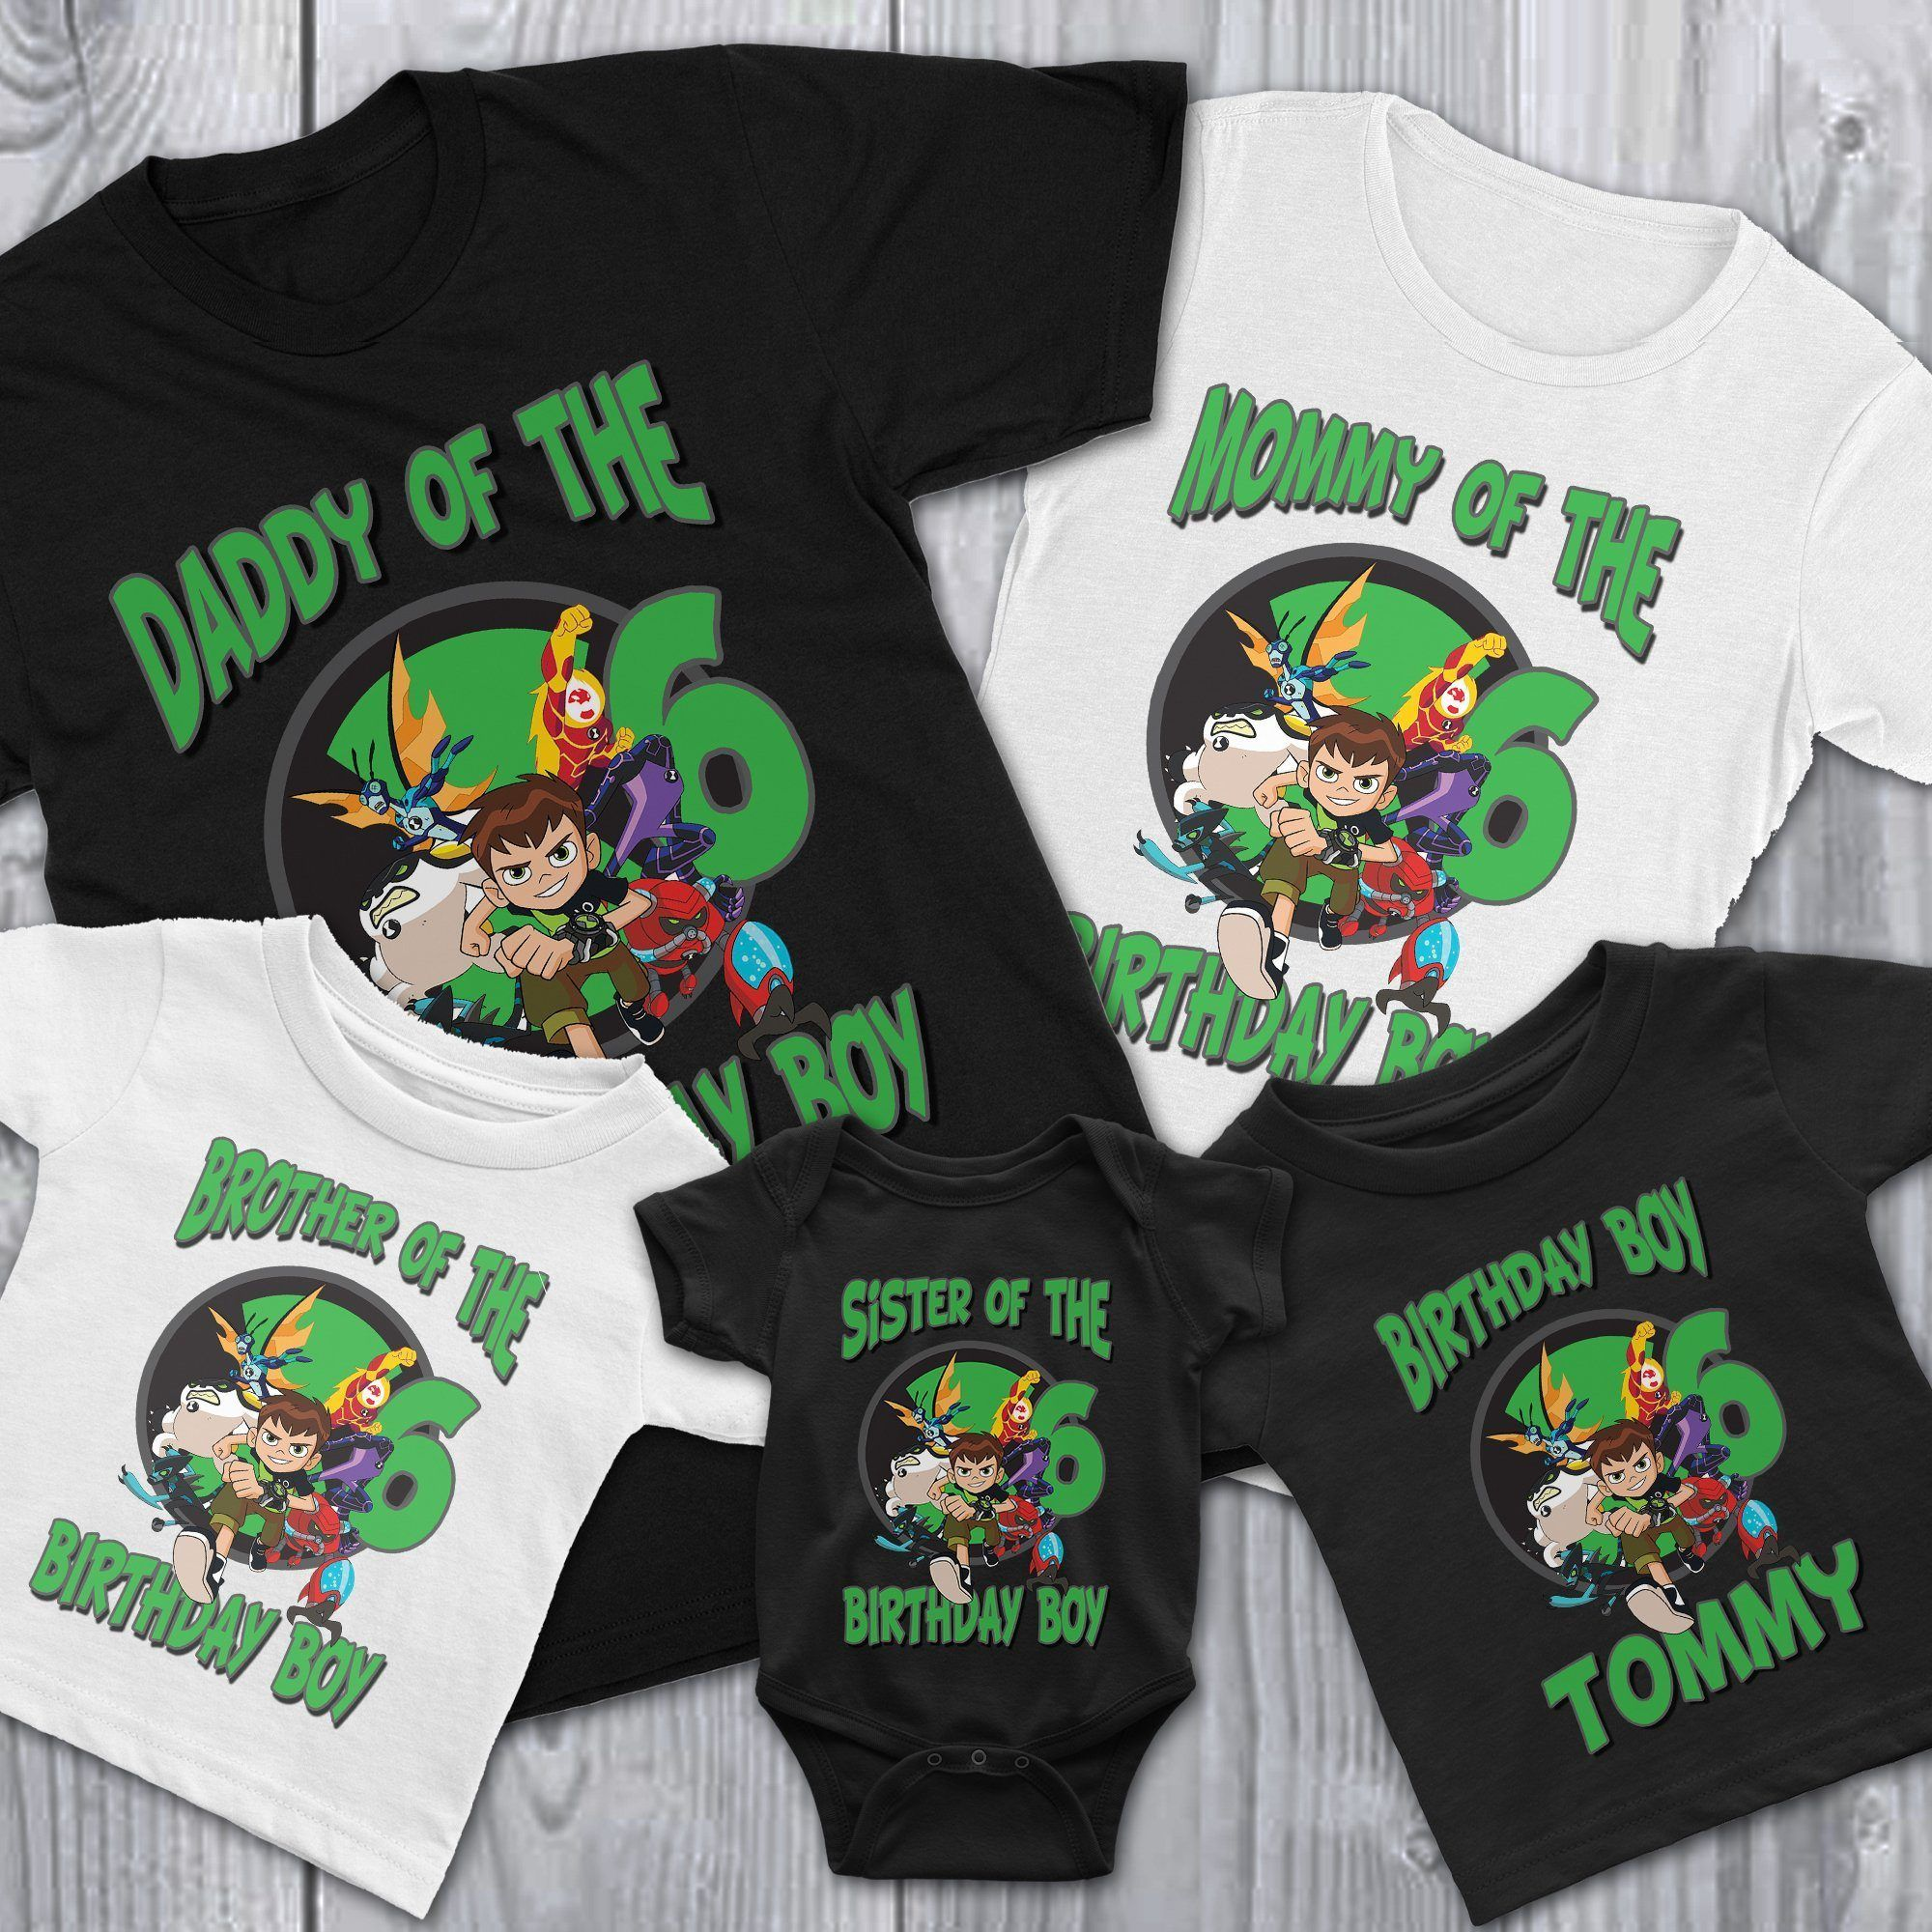 Ben 10 Birthday Shirt This Ben 10 Birthday Shirt is perfect for your child's birthday theme! Our Ben 10 Birthday Shirt are customized with your child's name and birthday age. You can get this Ben 10  Birthday Shirt on infant, toddler, youth or adult size. Our Ben 10  Birthday Shirt is 100% cotton which is already pre-shrunk and enzyme washed to give it the smoothest and softest feel. How to order a Personalized Ben 10 Birthday Shirt Select Size and Color Provide Name and Age Select if it's for